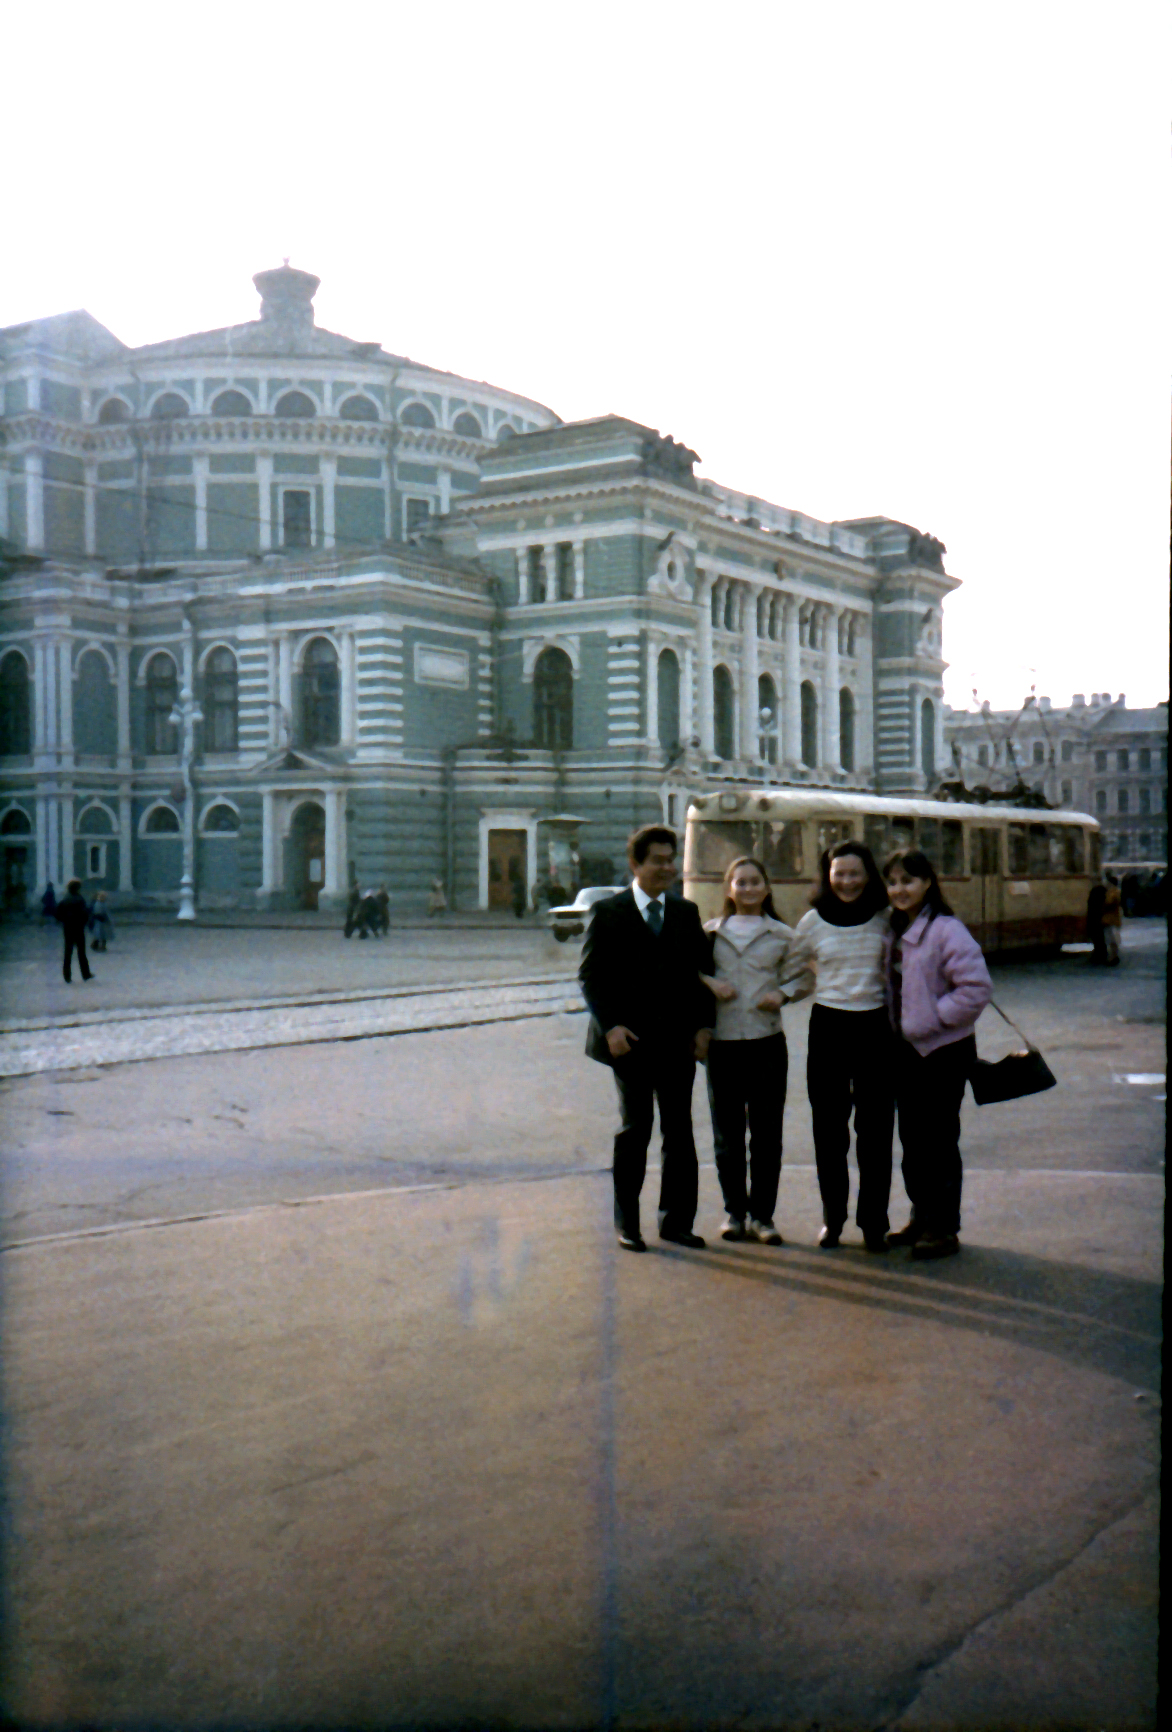 Posing in front of the Hermitage Museum was one of the many bonding moments that the Macuja family shared during Lisa Macuja's four-year stay in Russia, from 1982 to 1986. Those precious visits helped Lisa cope with her homesickness, doubts and fears. Photo from the Ballet Manila Archives collection